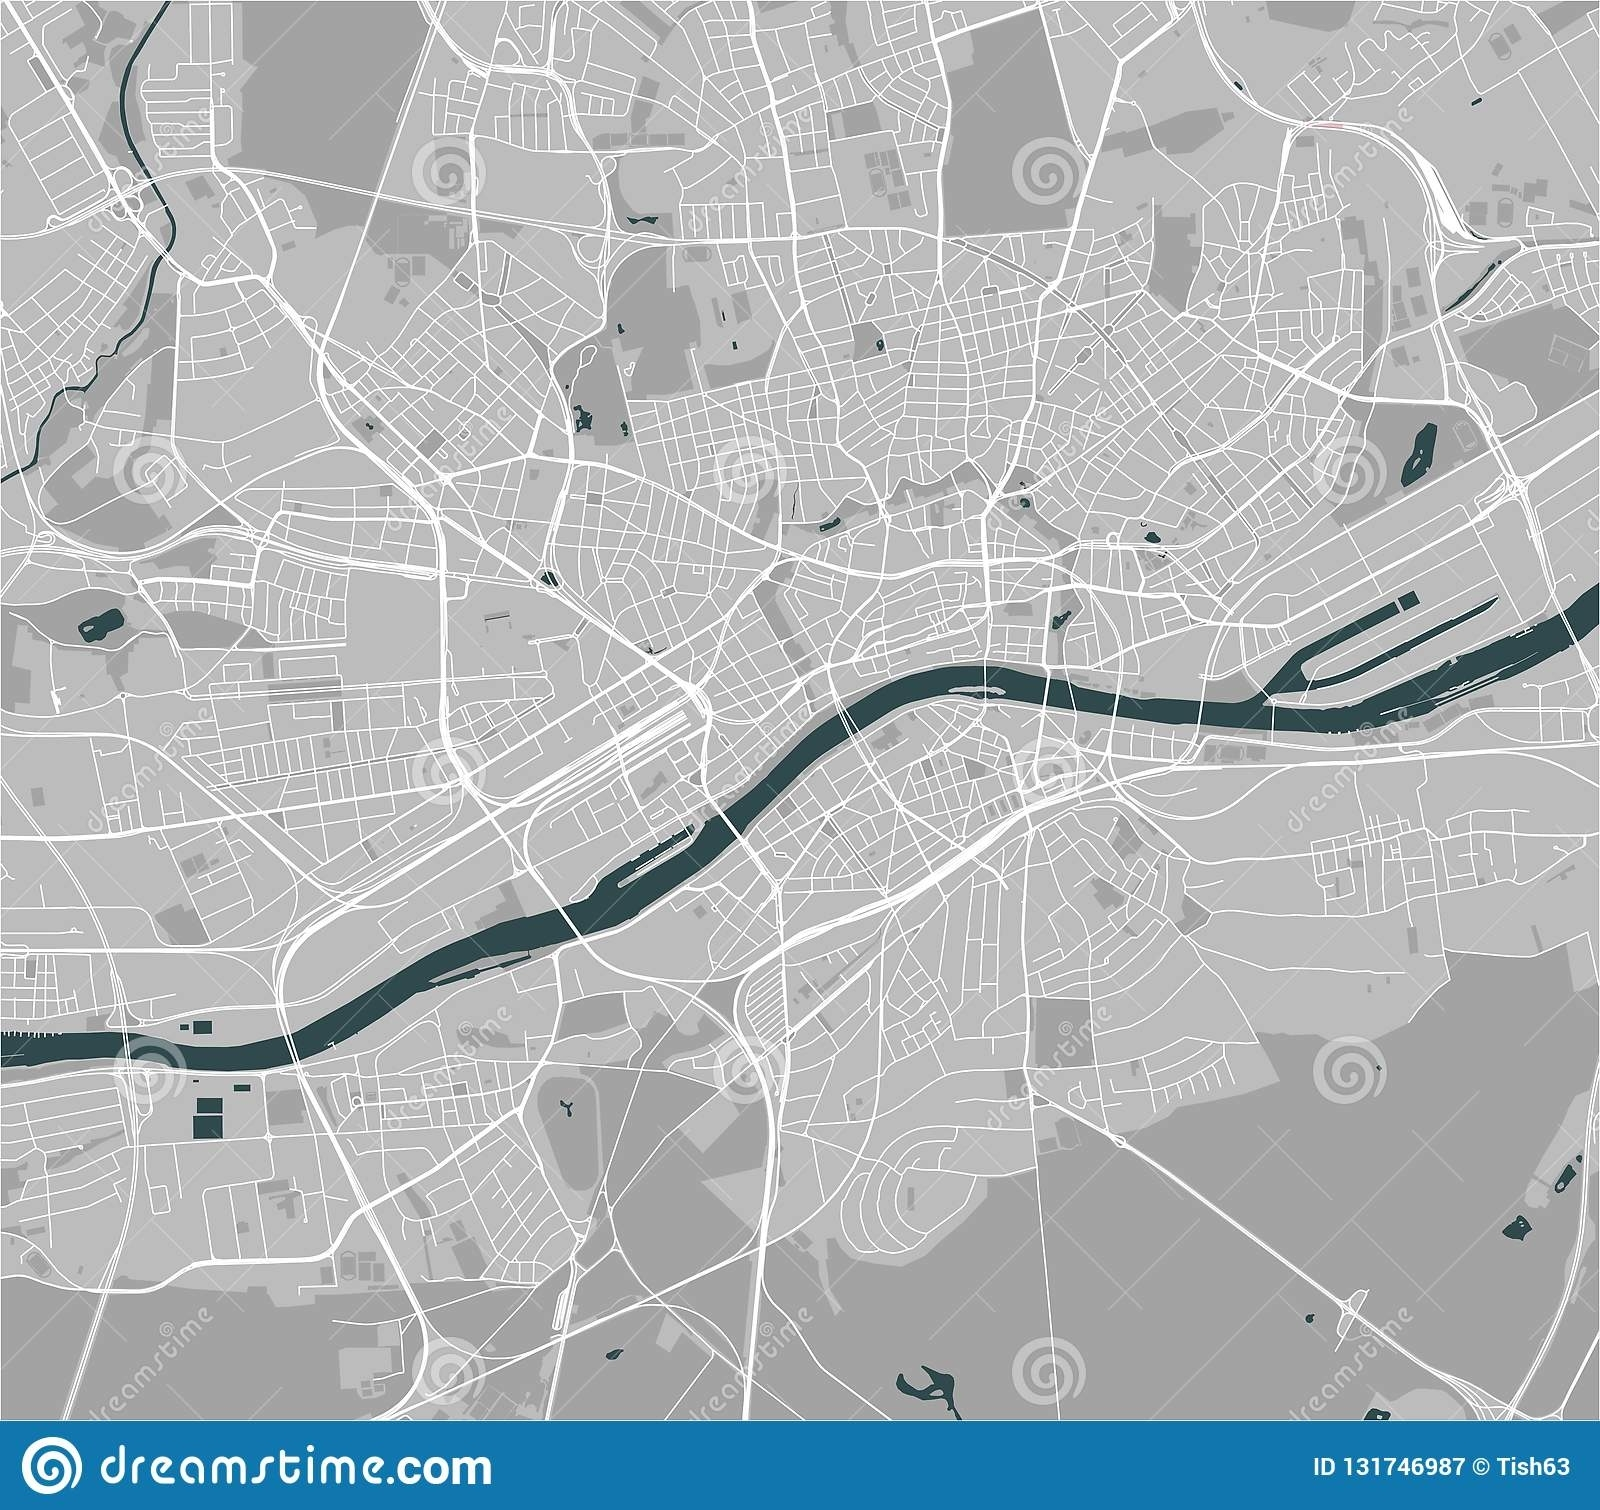 Map Of The City Of Frankfurt Am Main, Hesse, Germany Stock Vector intended for Frankfurt Am Main Germany Map